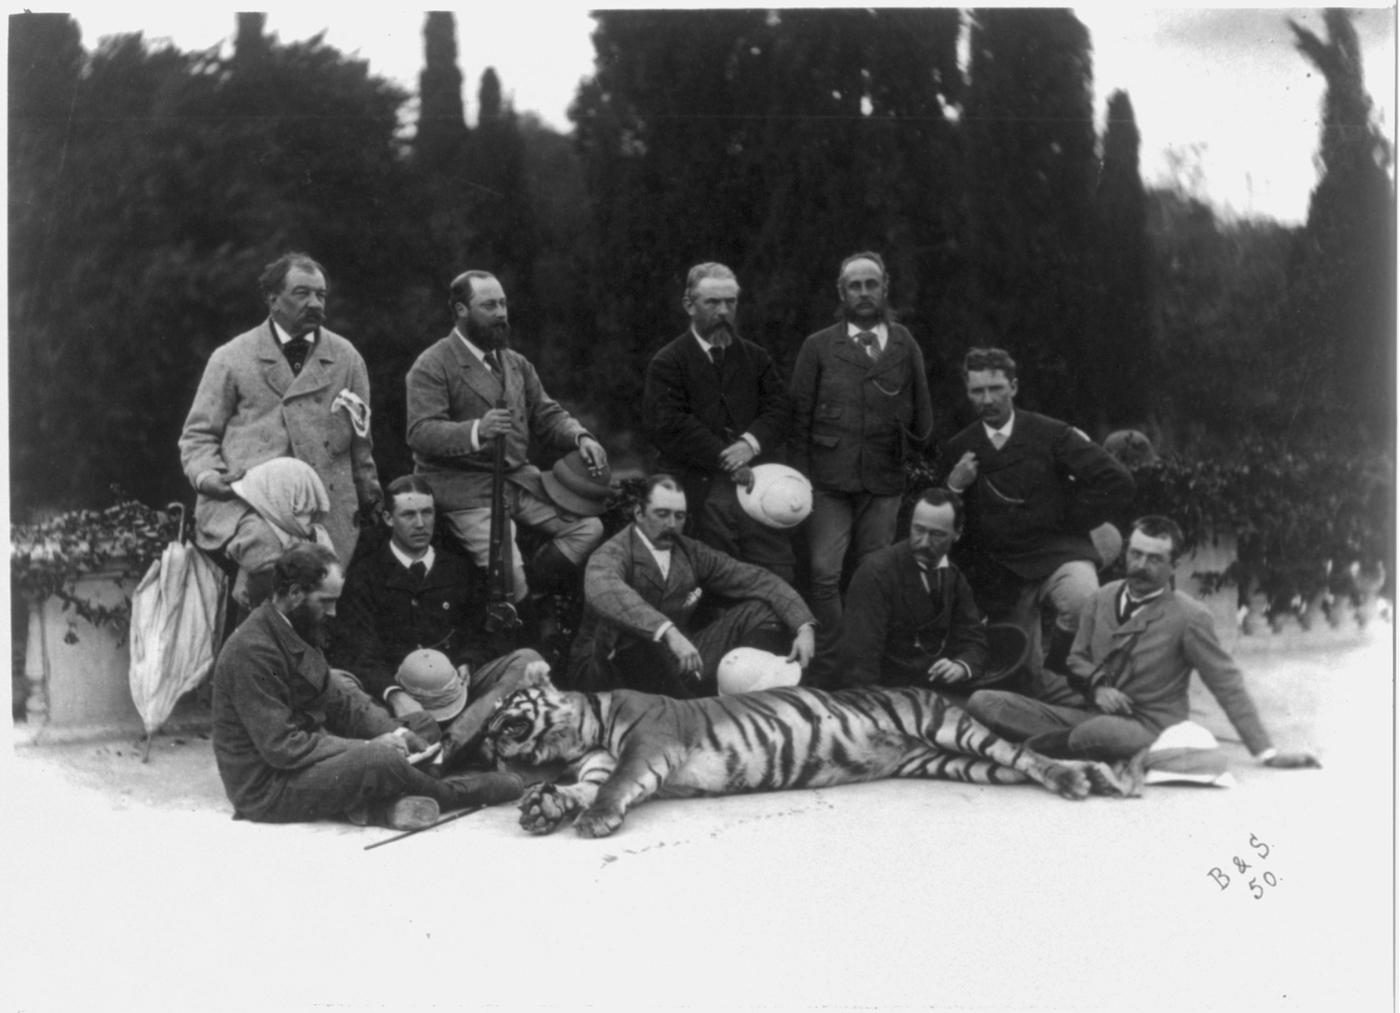 Bourne & Shepherd's c. 1875 photograph of the rifle-toting Prince of Wales, posing with a tiger he killed and members of his hunting party during his tour of India (via the Library of Congress)